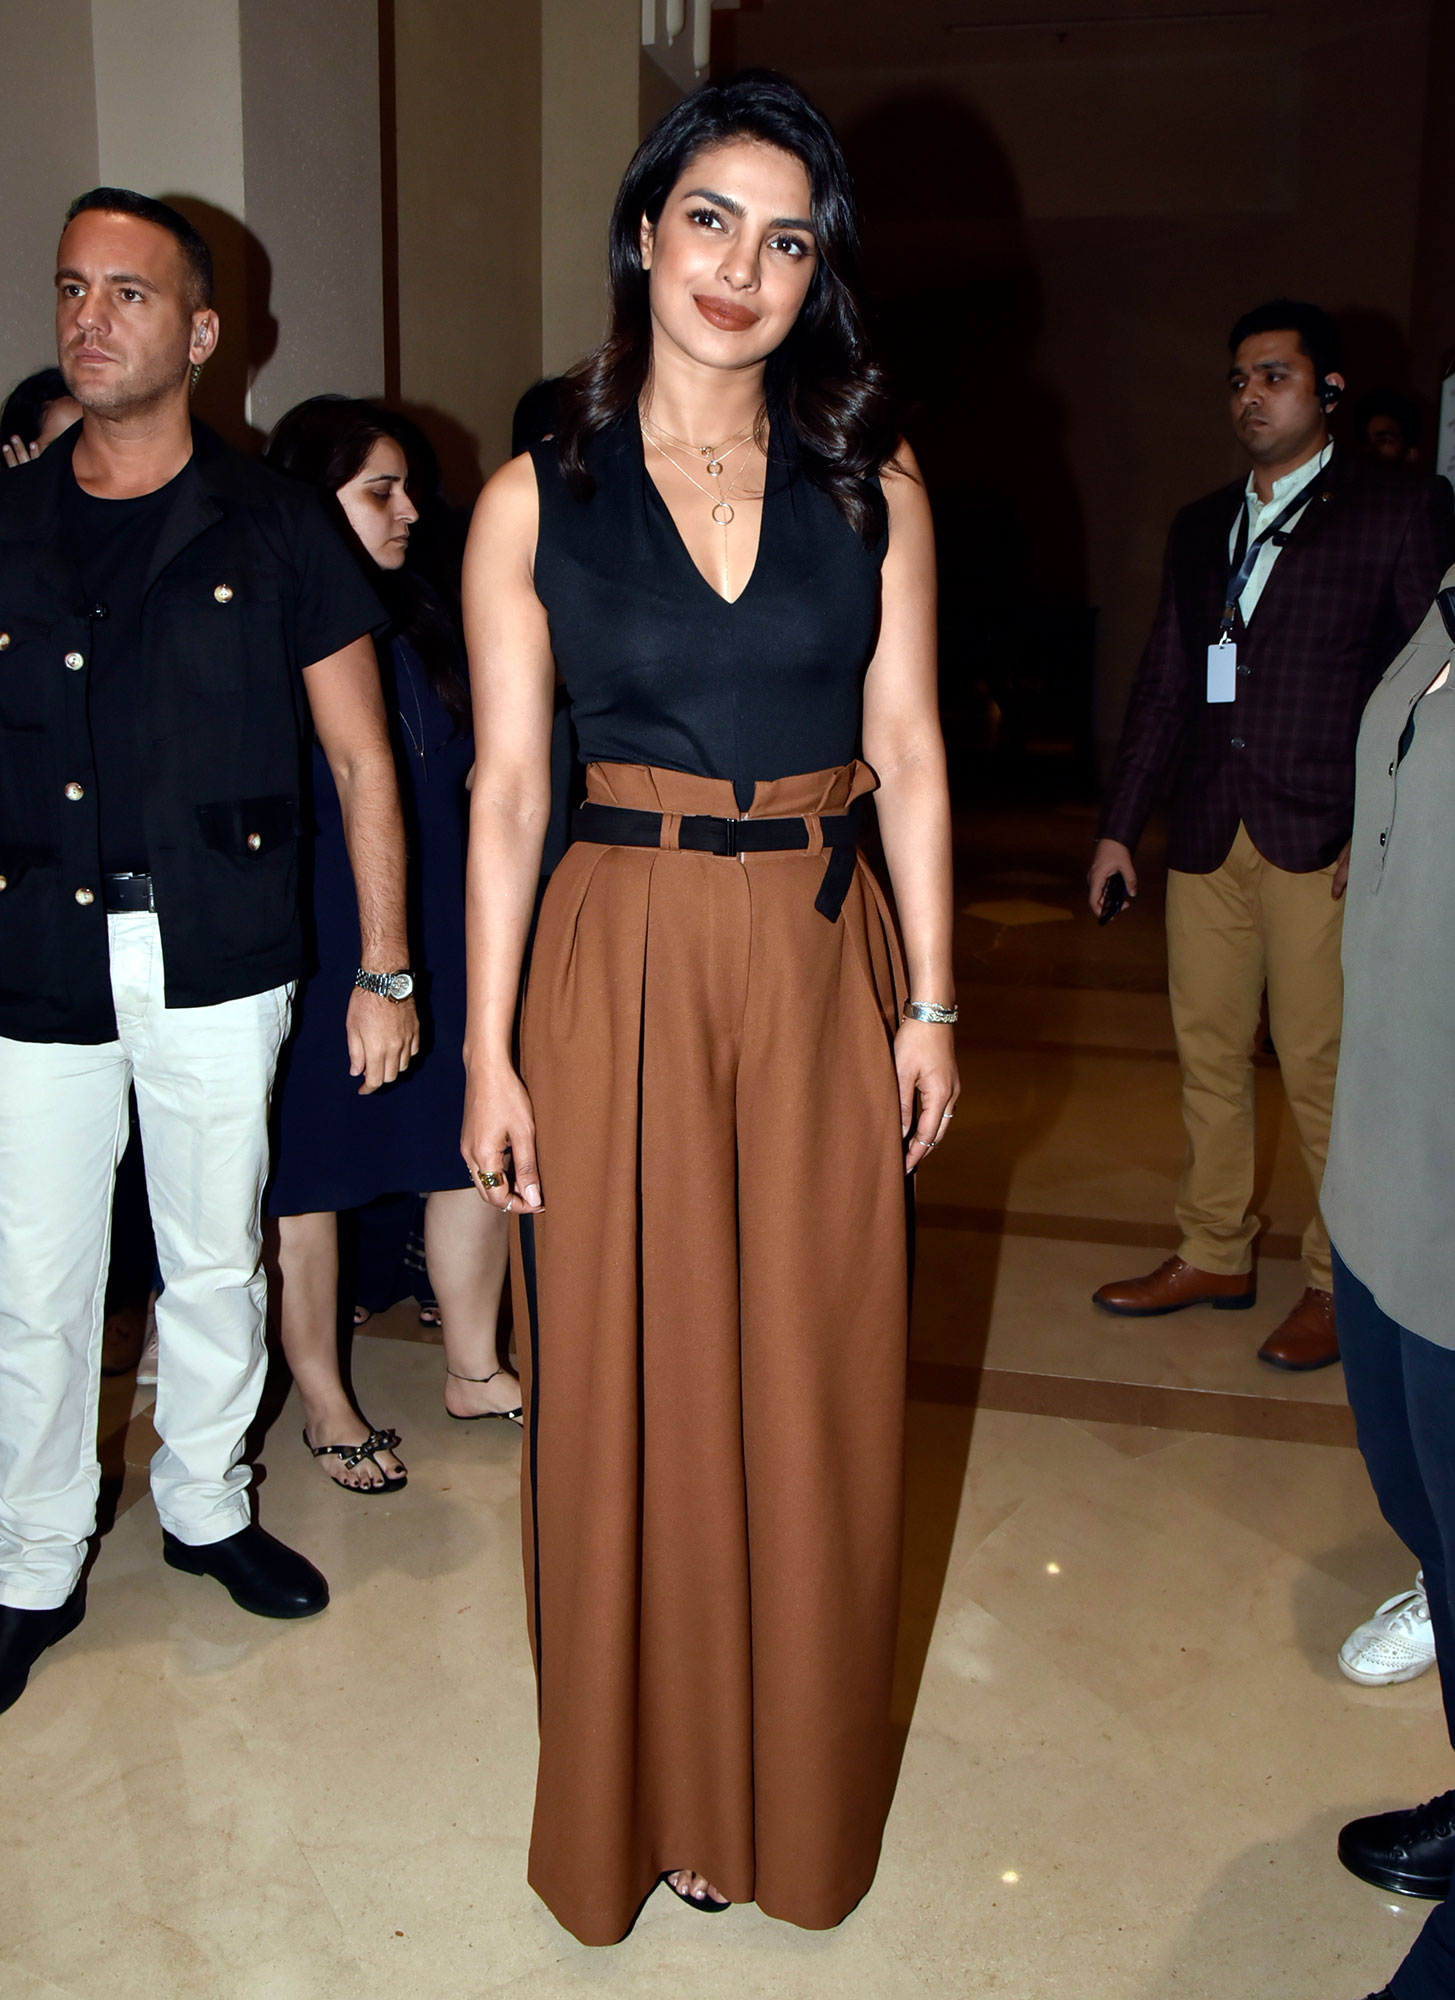 Priyanka Chopra Is Seen Out And About In India As She Prepares To Marry Nick Jonas In A Traditional Ceremony